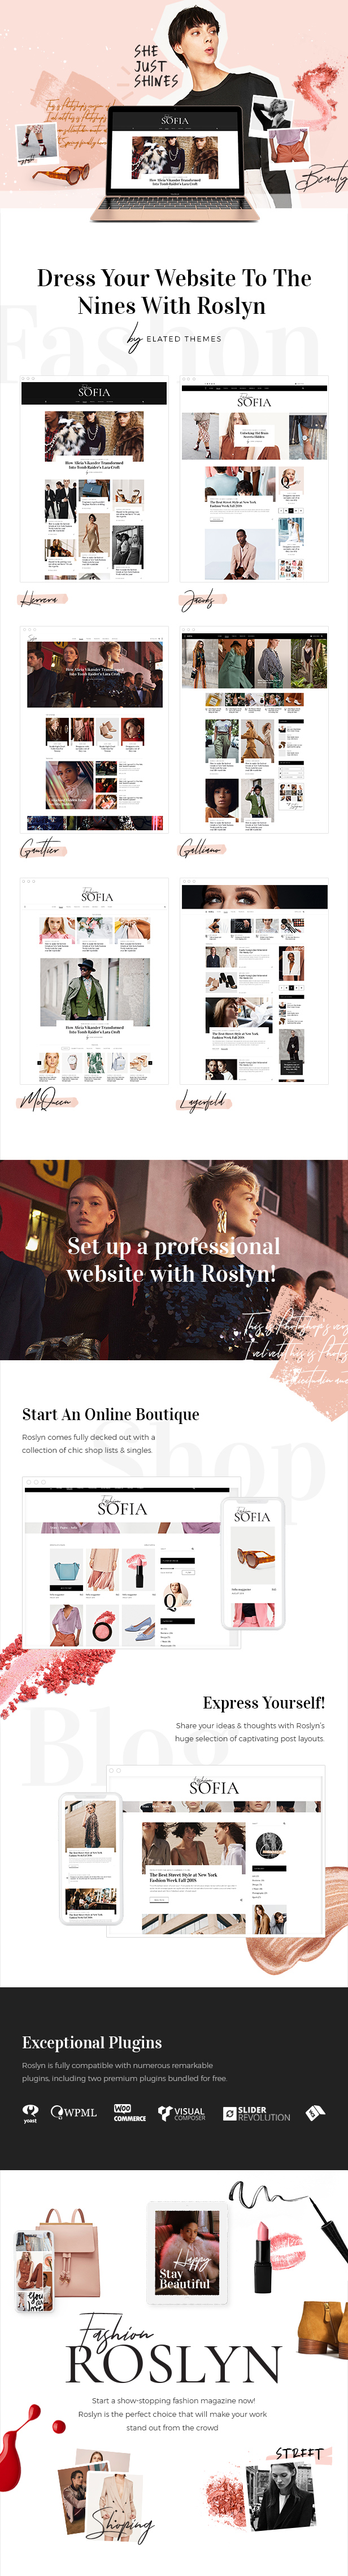 WordPress theme Roslyn - A Fashion and Lifestyle Theme for Bloggers and Magazines (News / Editorial)